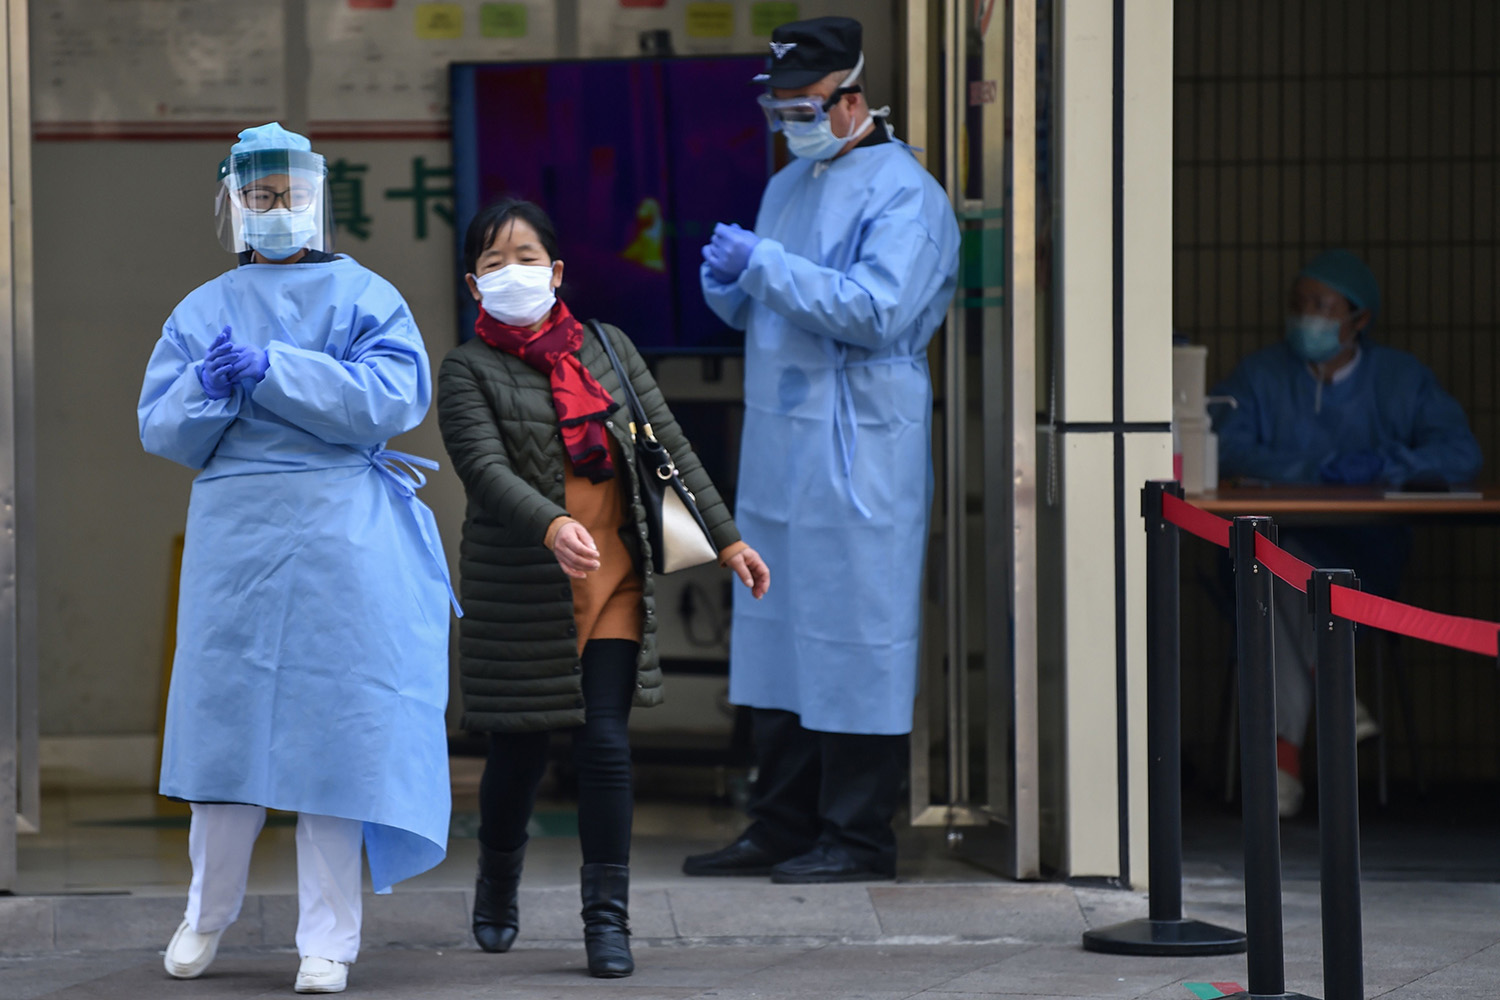 A woman slips past medical staff wearing protective clothing at the entrance of Huashan Hospital in Shanghai on Feb. 27. HECTOR RETAMAL/AFP via Getty Images